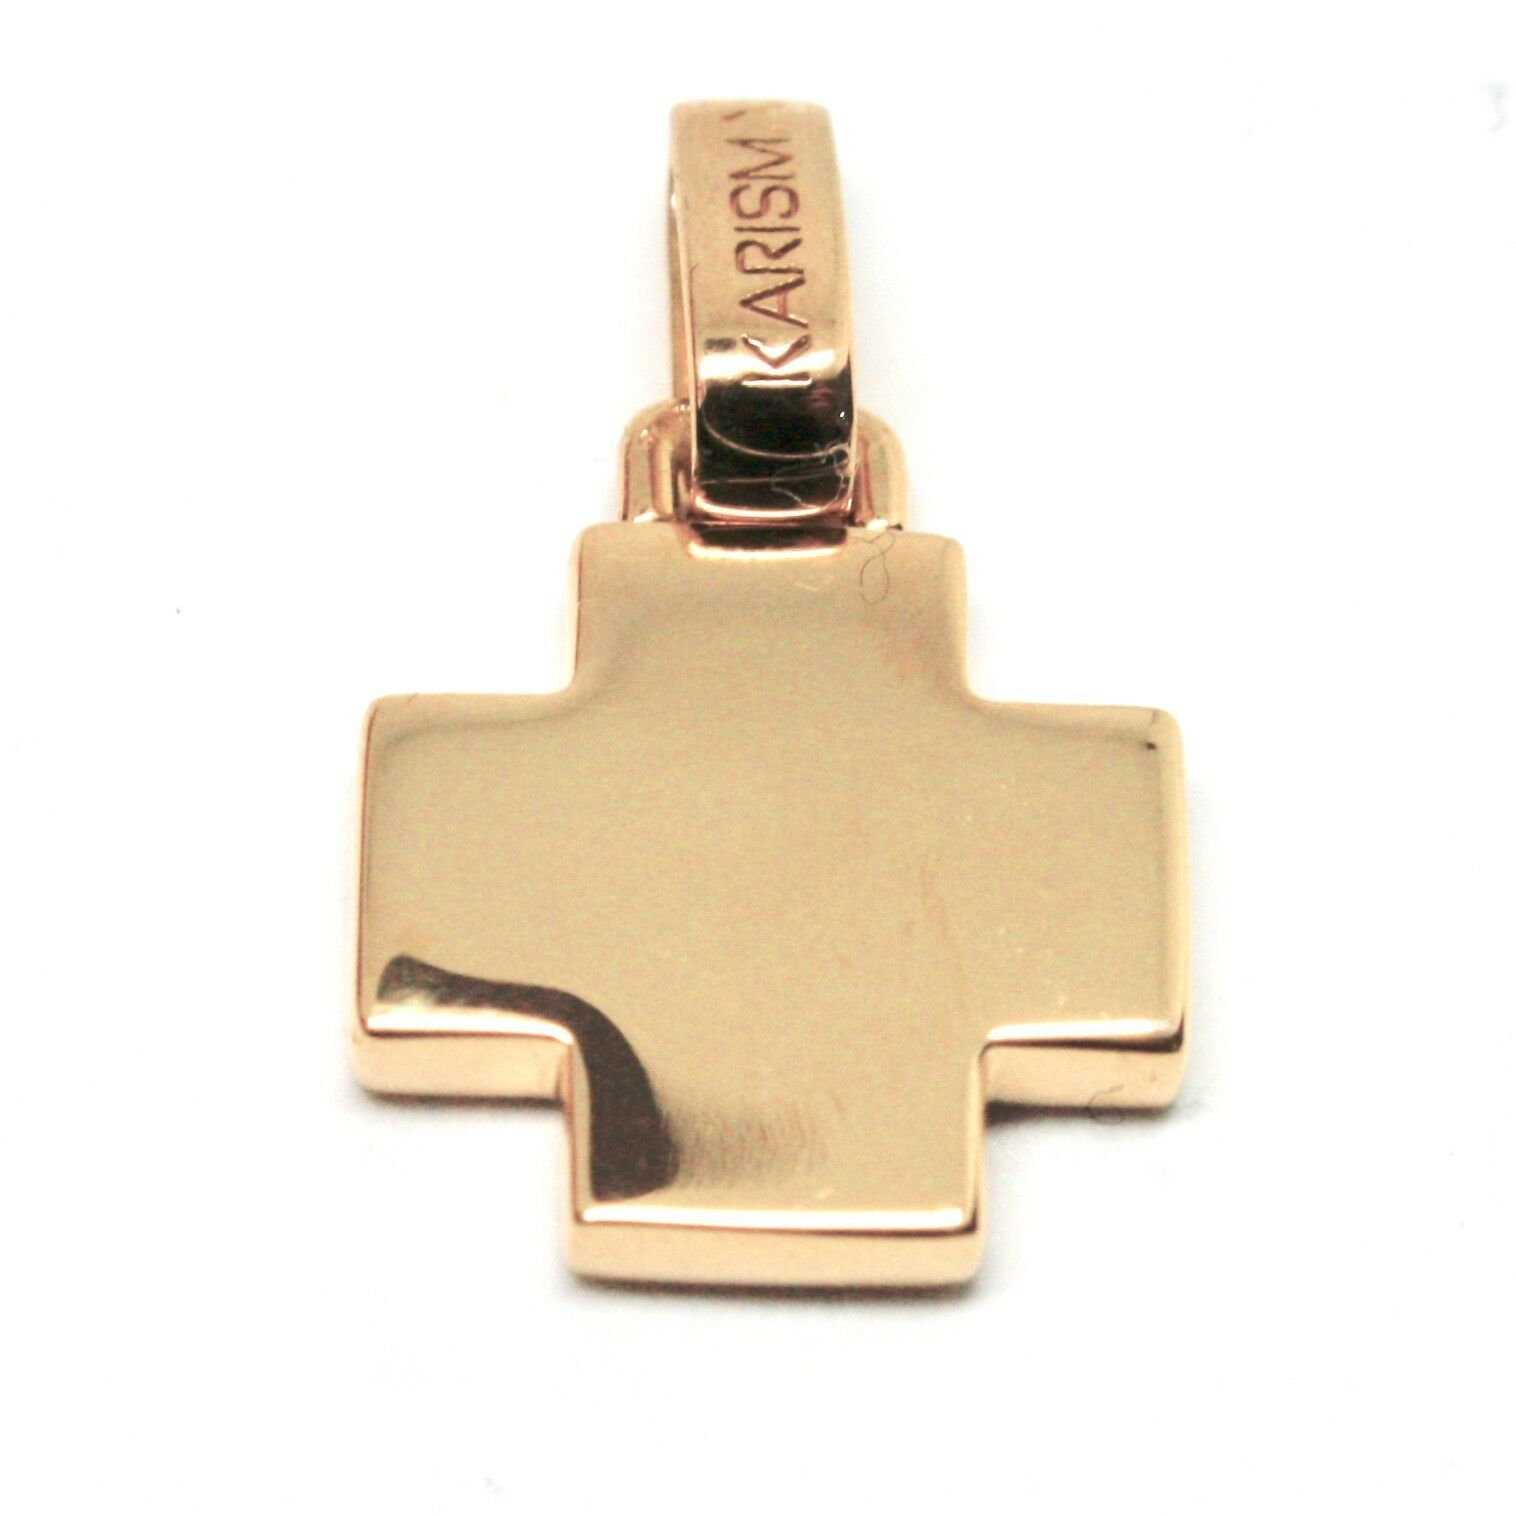 Primary image for PENDENTIF CROIX KARISMA OR ROSE 18K 750 AVEC LE DOS PERFORÉ MADE IN ITALY